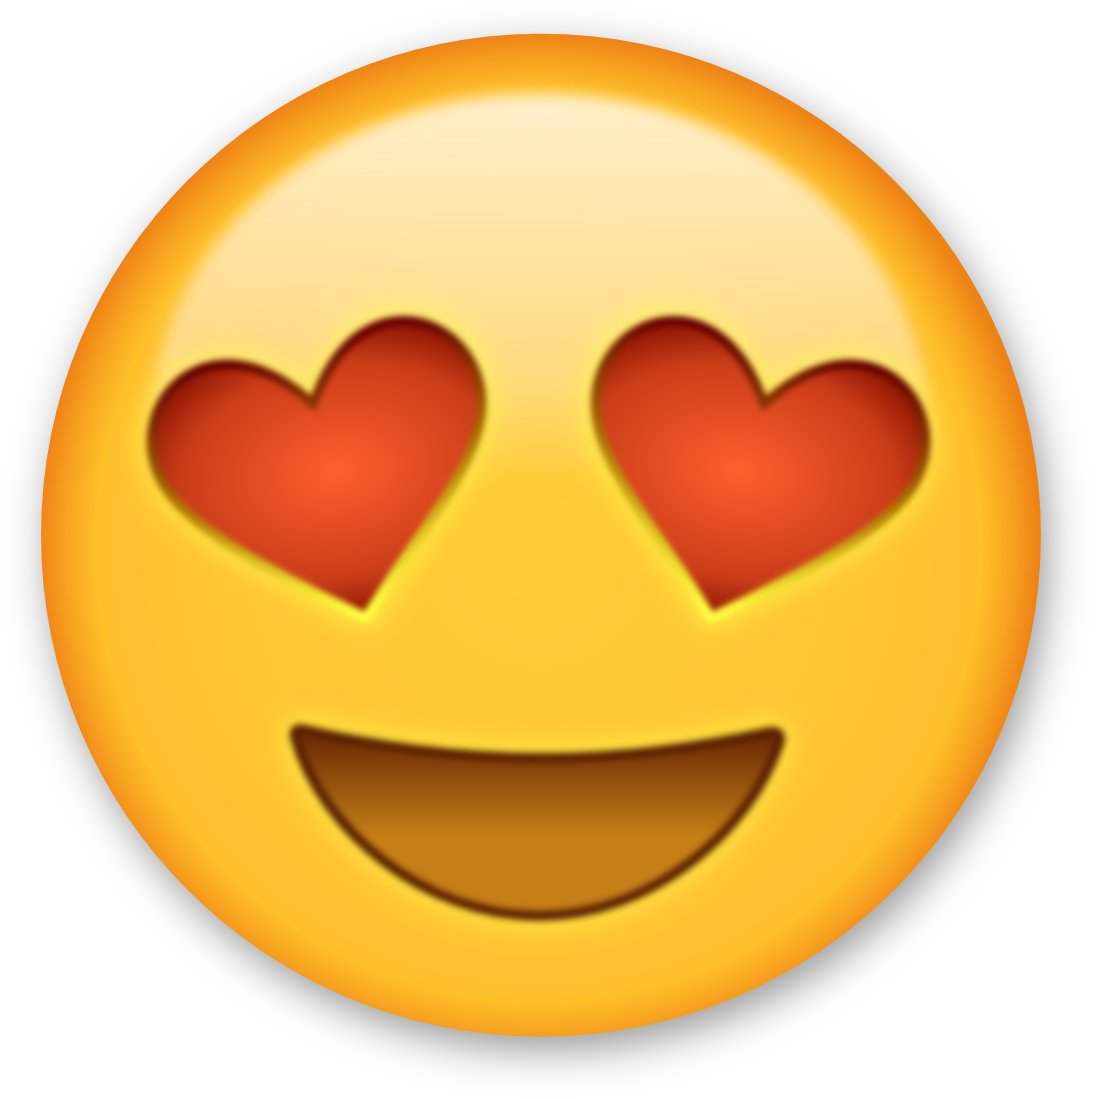 1096x1099 Little Emoji That I Put Together For A Project For A Potential